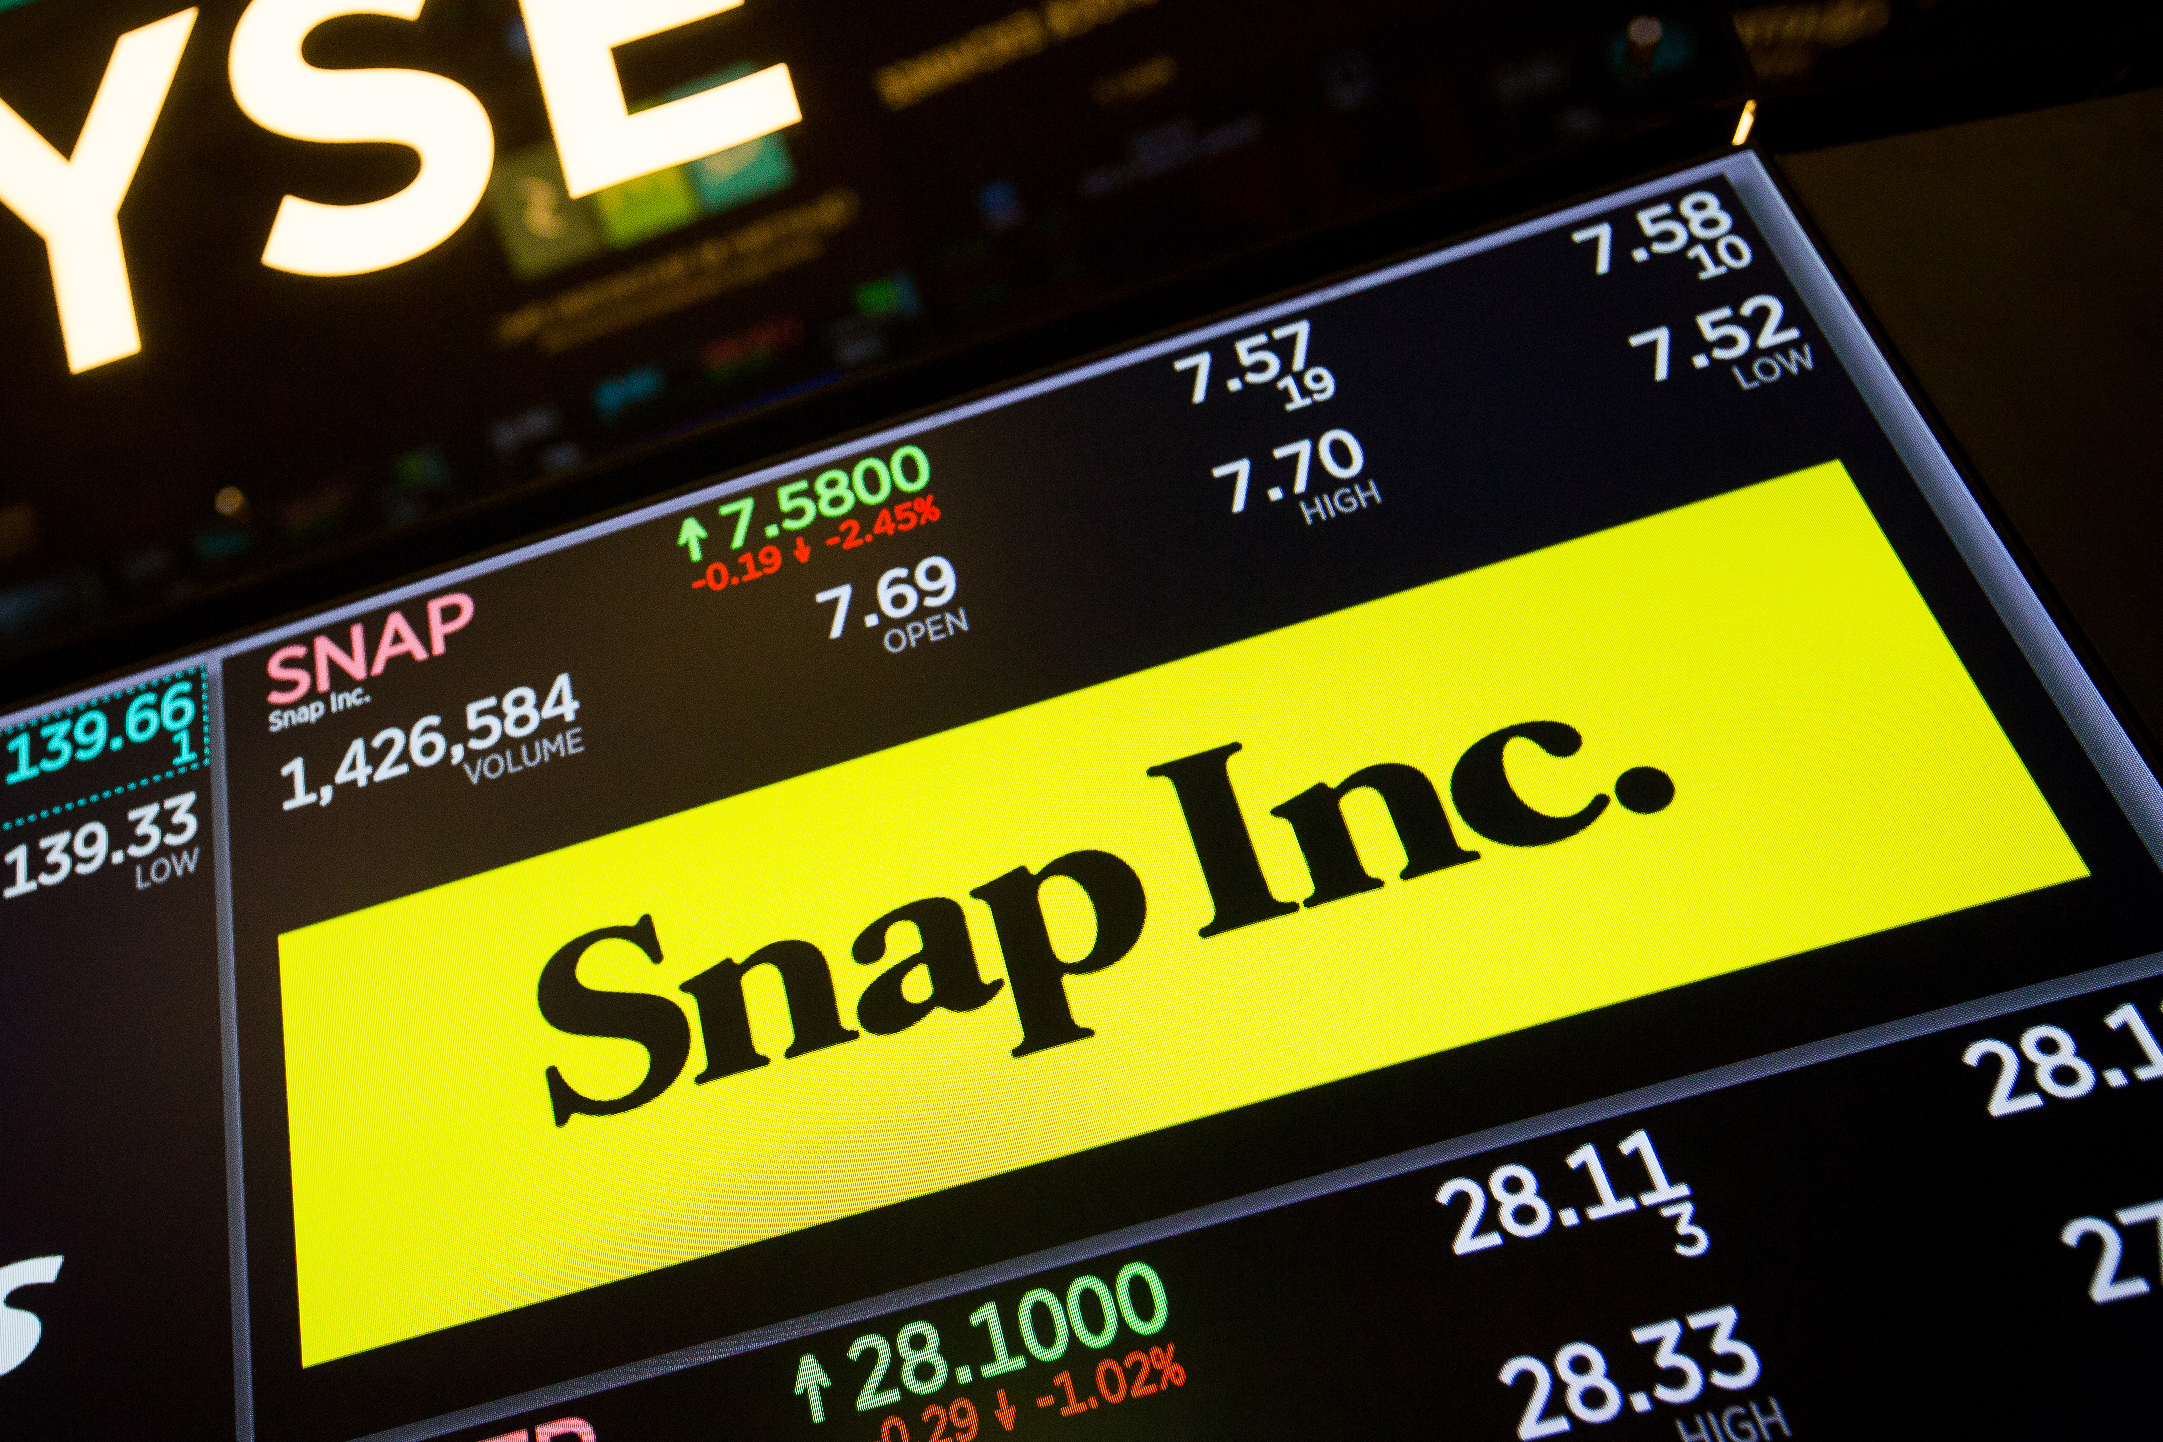 Snap wins new users in first quarter, sales beat estimates